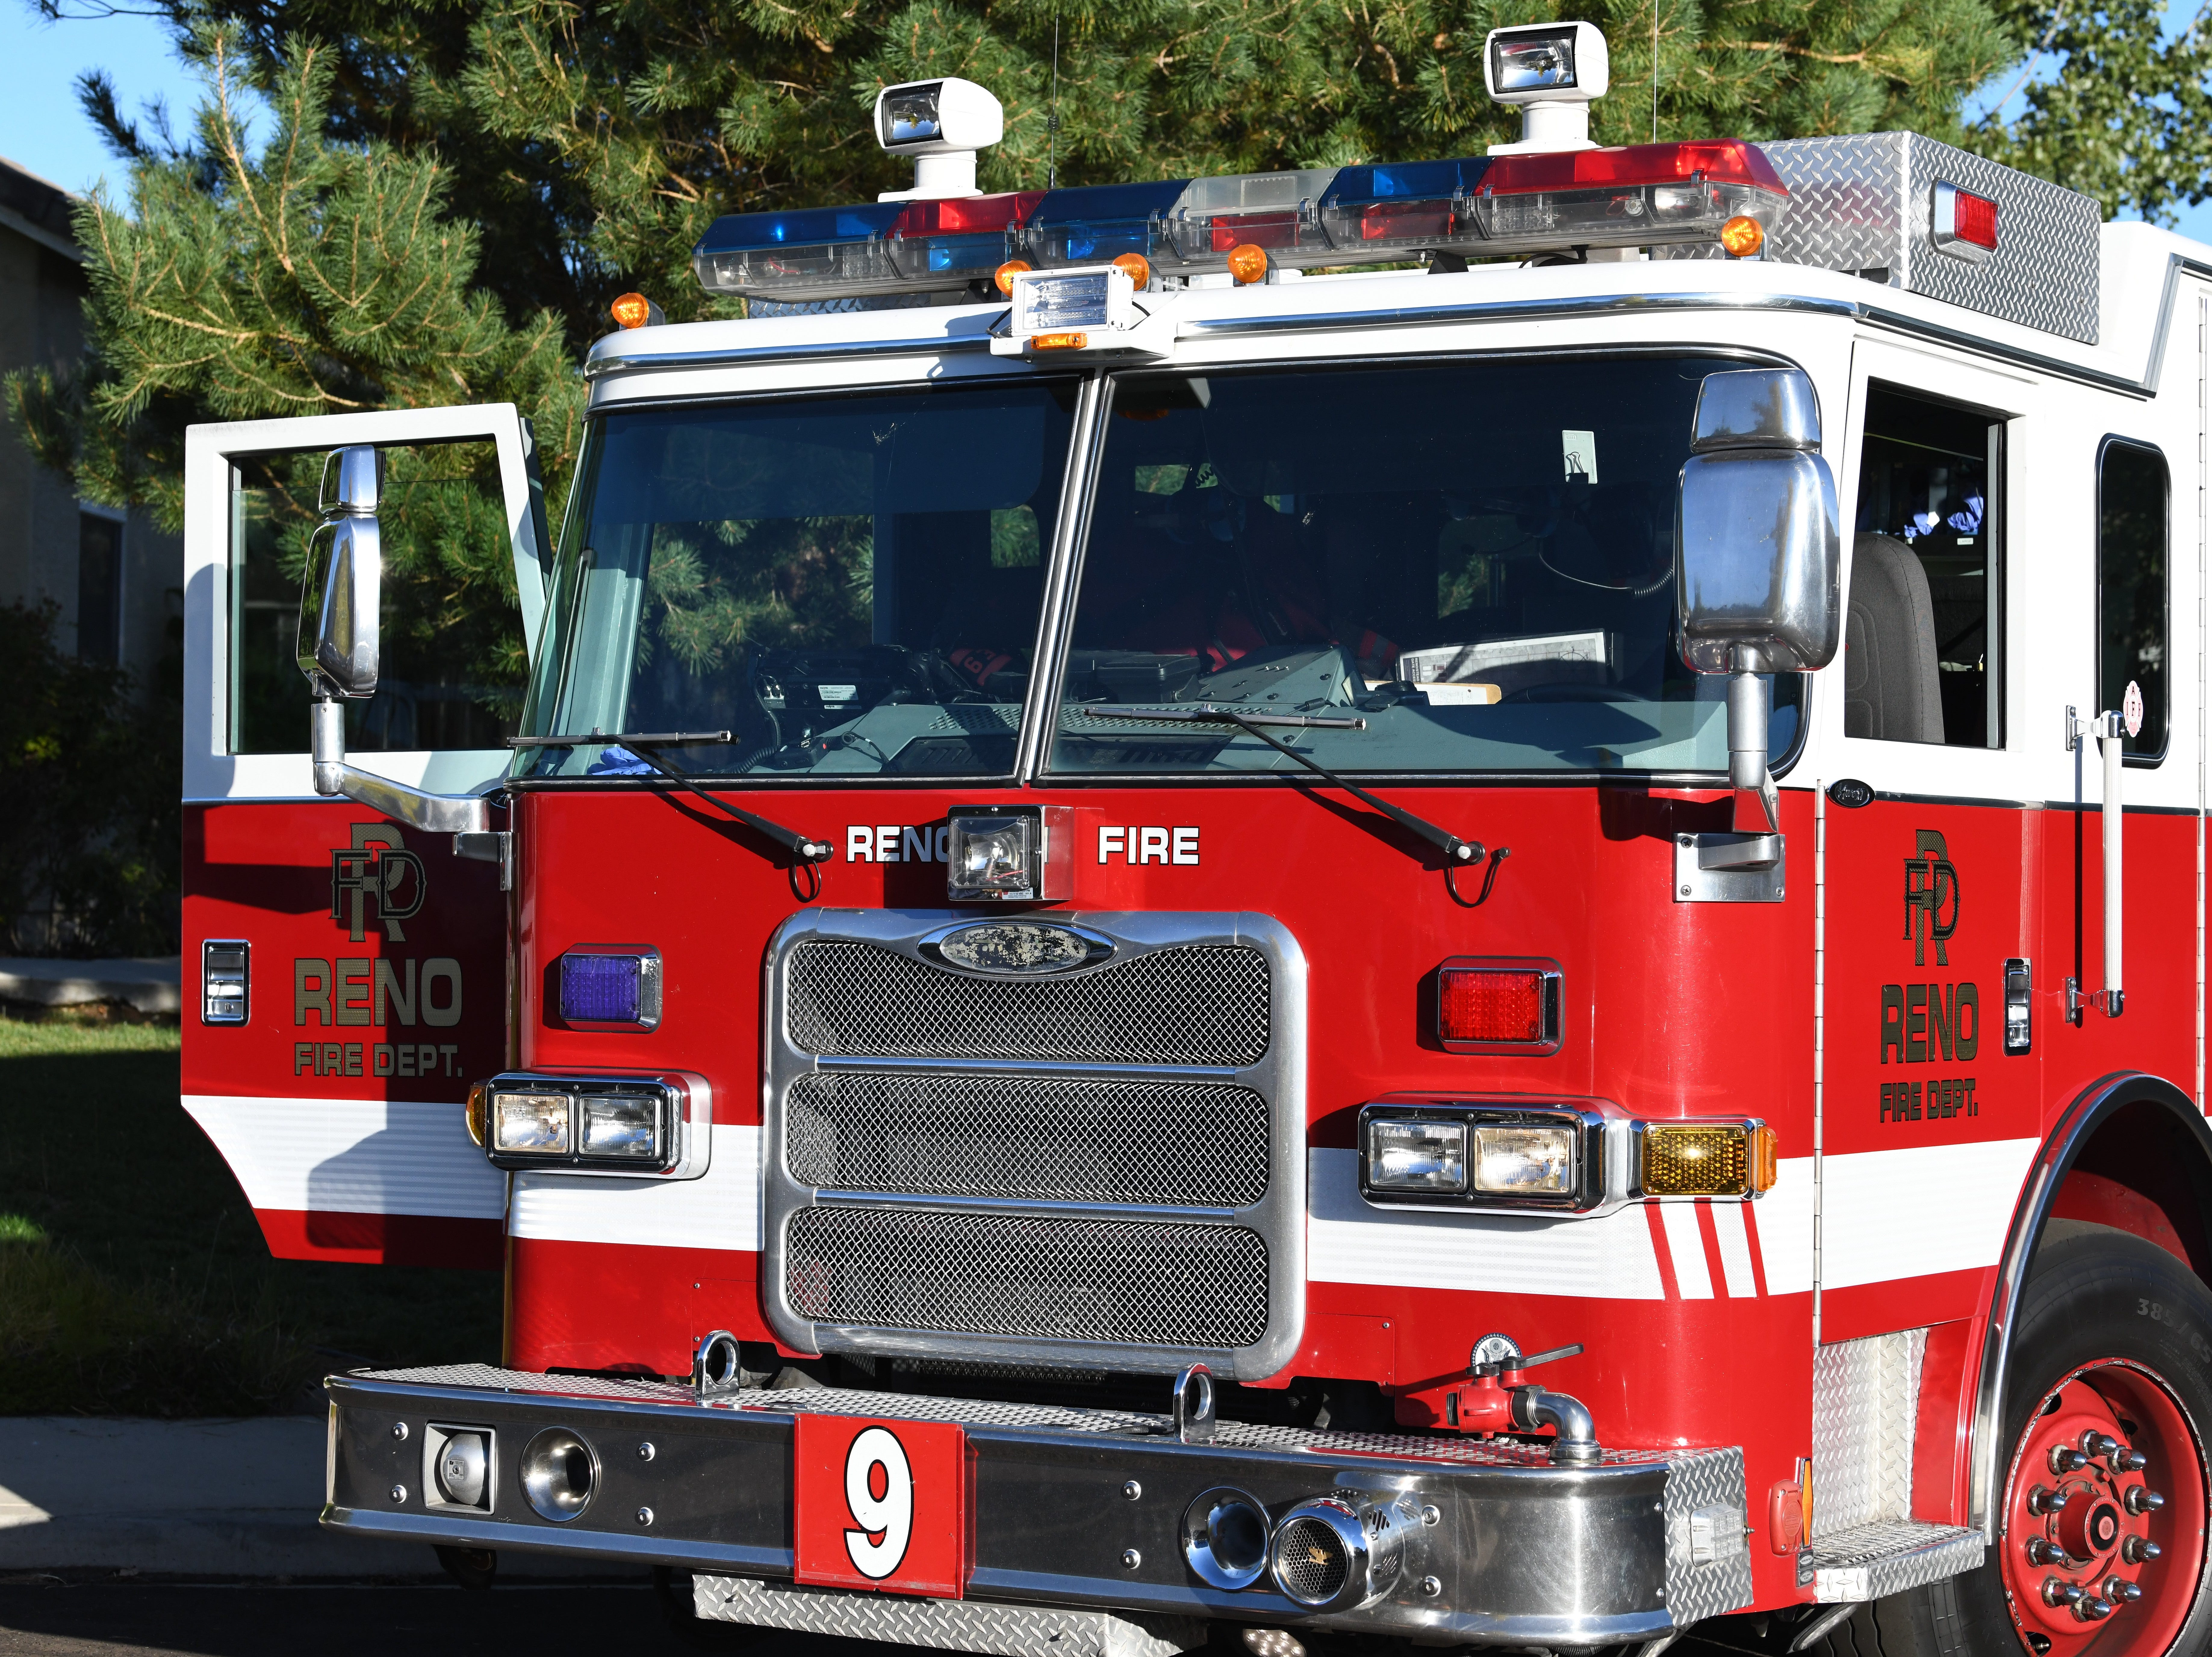 Reno man arrested on first degree arson charges after fire breaks out inside his condo